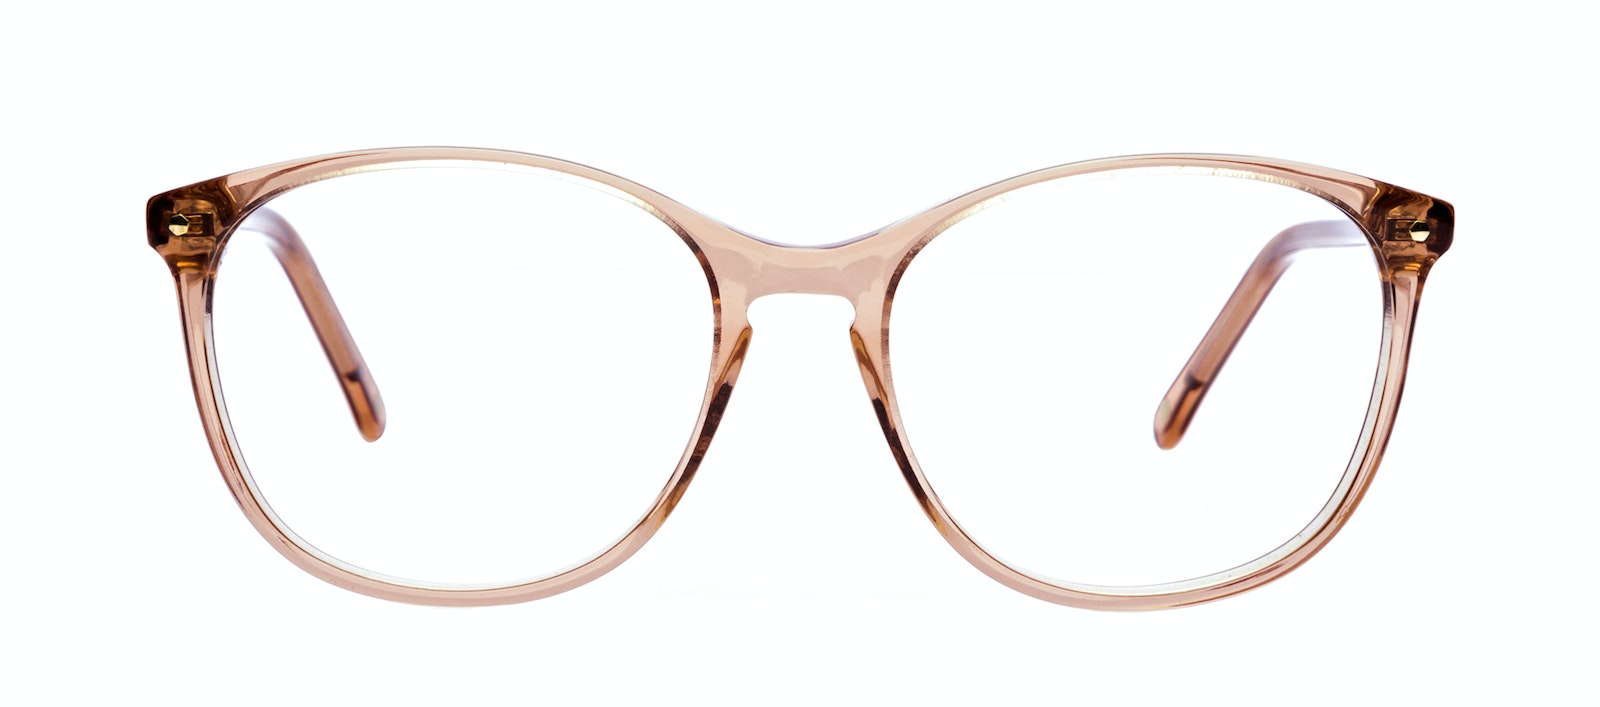 Affordable Fashion Glasses Round Eyeglasses Women Versa Rose Front